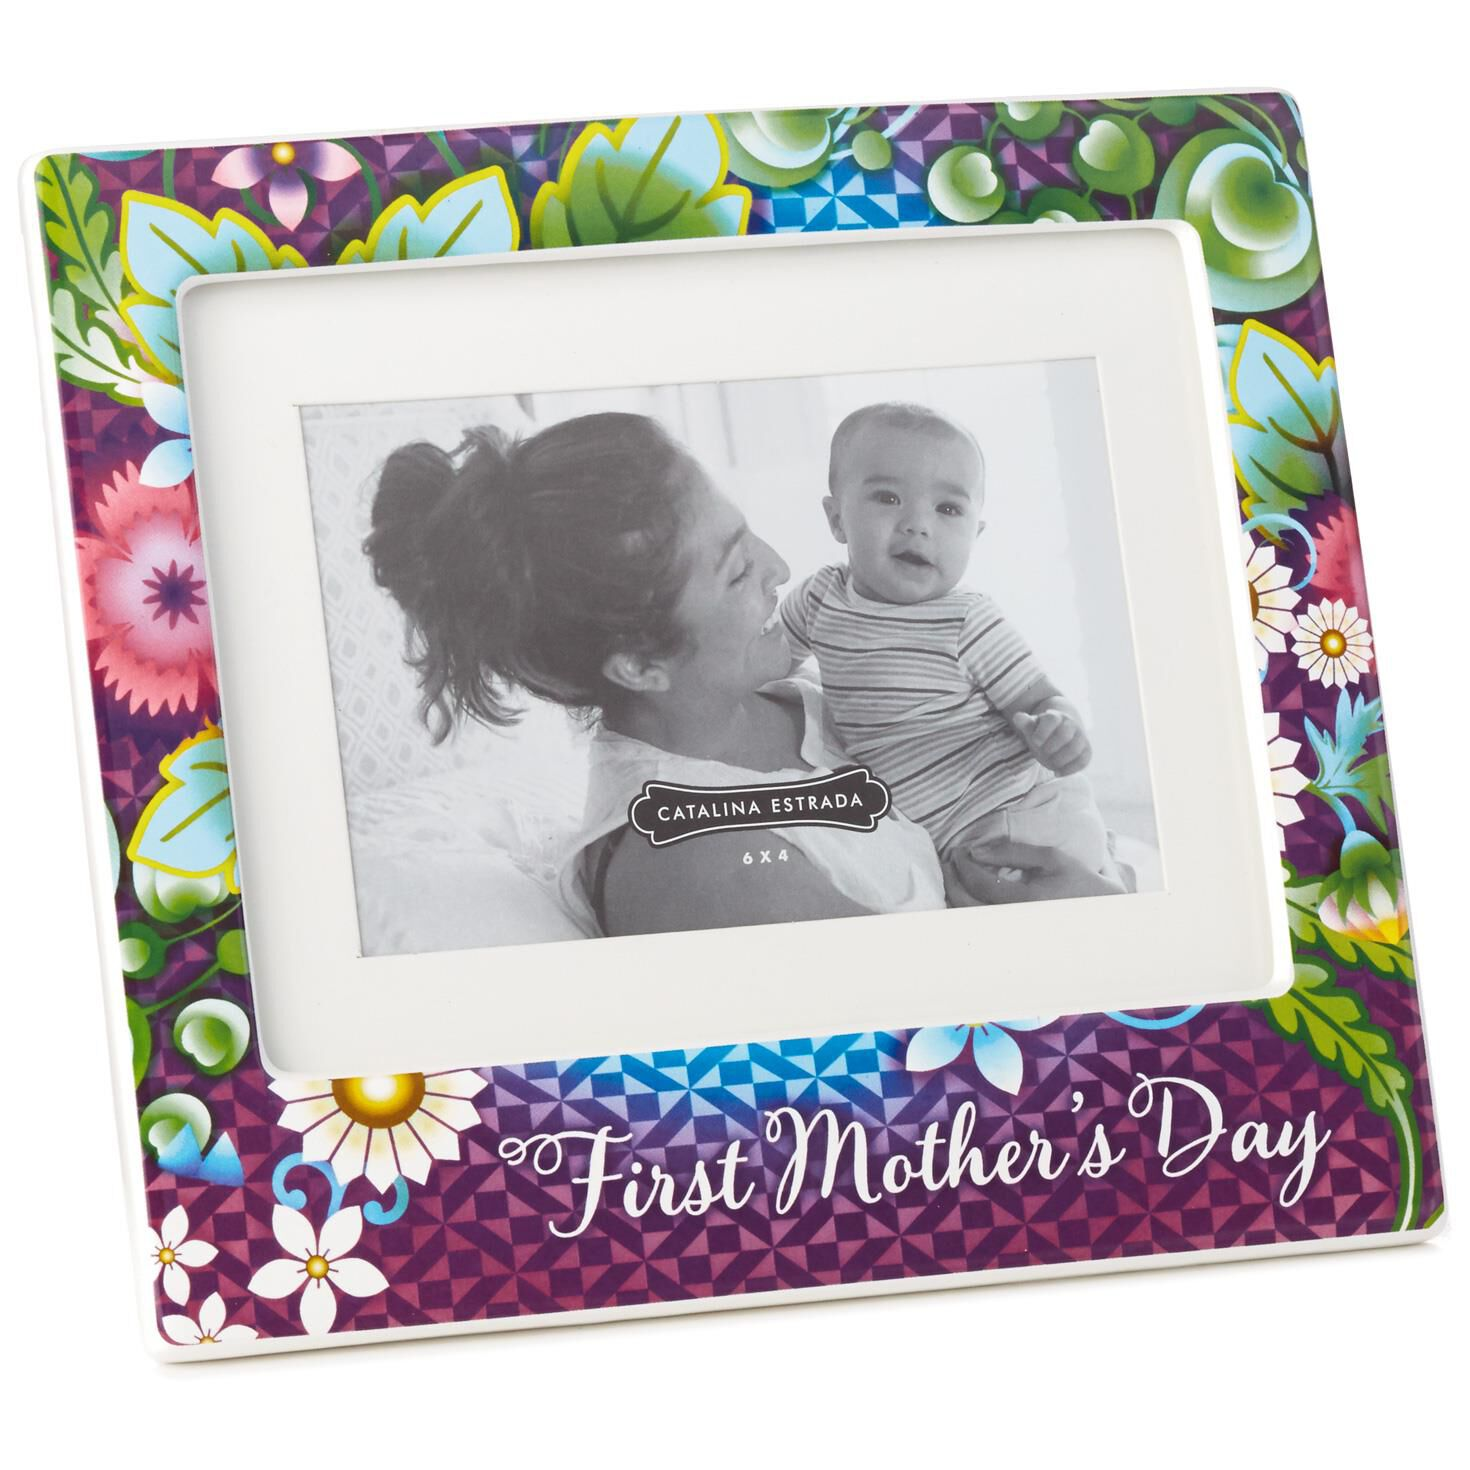 Catalina Estrada First Mother\'s Day Picture Frame, 4x6 - Picture ...